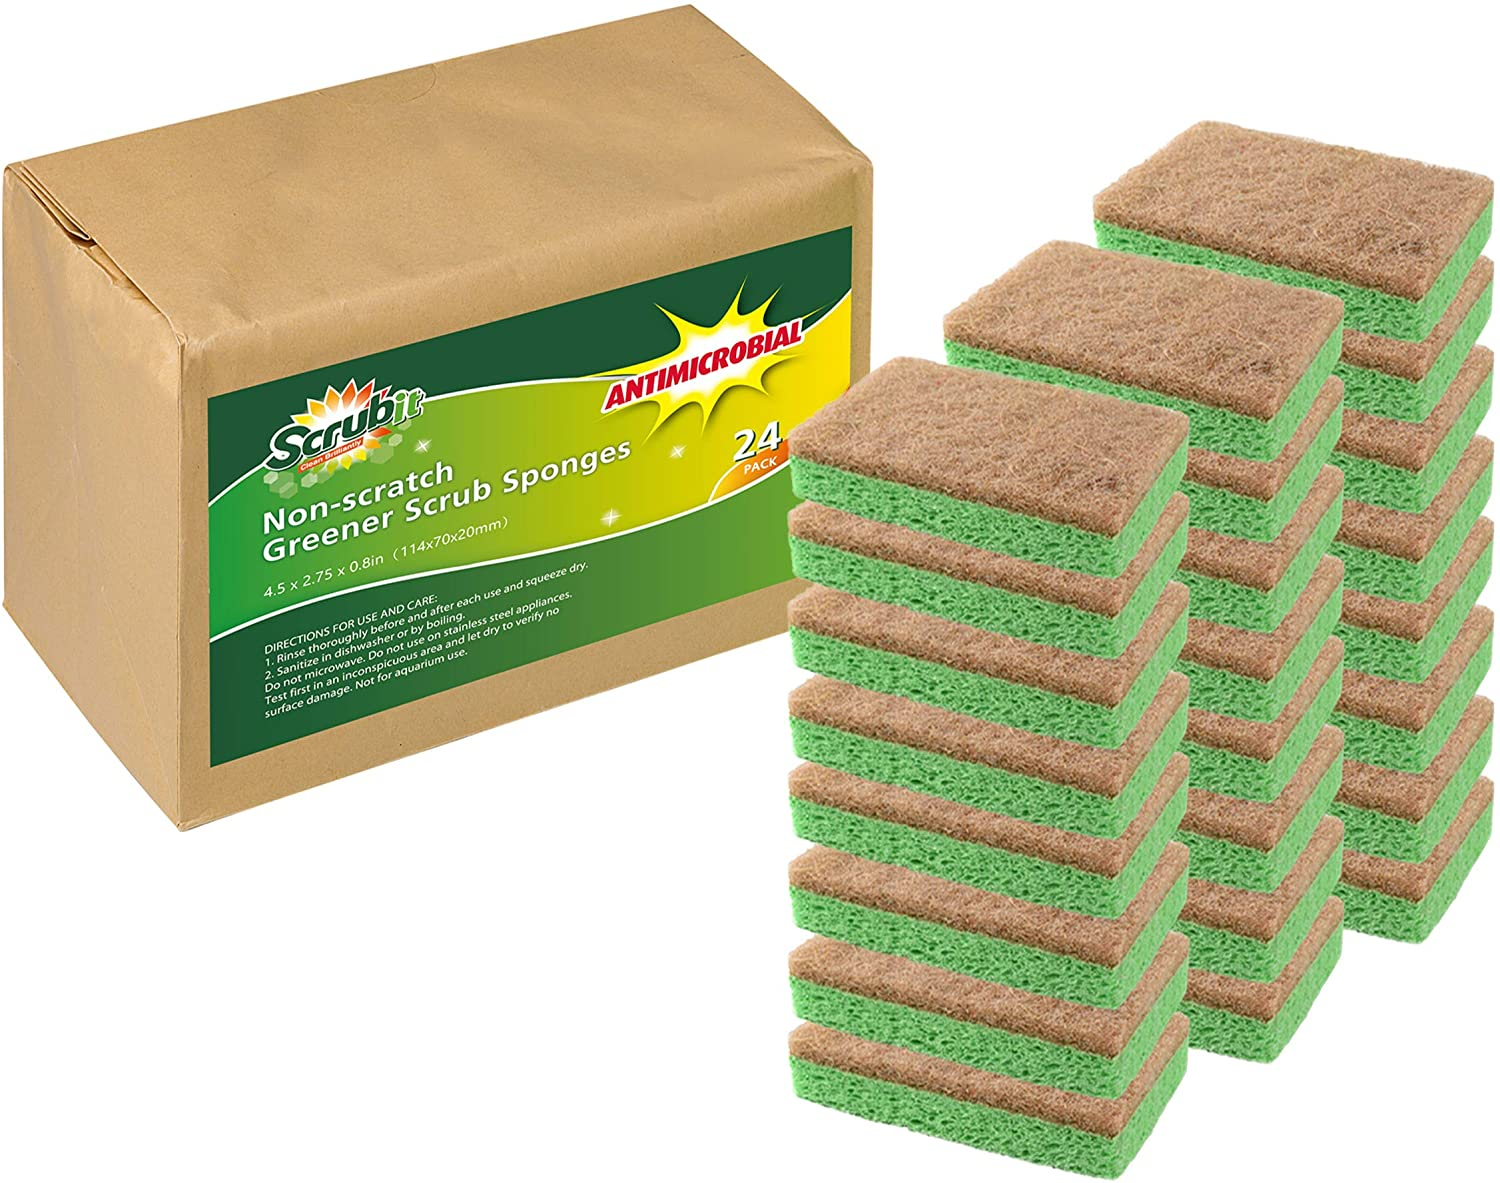 Natural Plant-Based Scrub Sponge by Scrub-it, Non-Scratch, Biodegradable scrubbing sponges with a Tough Anti-Bacterial scouring pad for Kitchen and Bathroom– 24 Pack